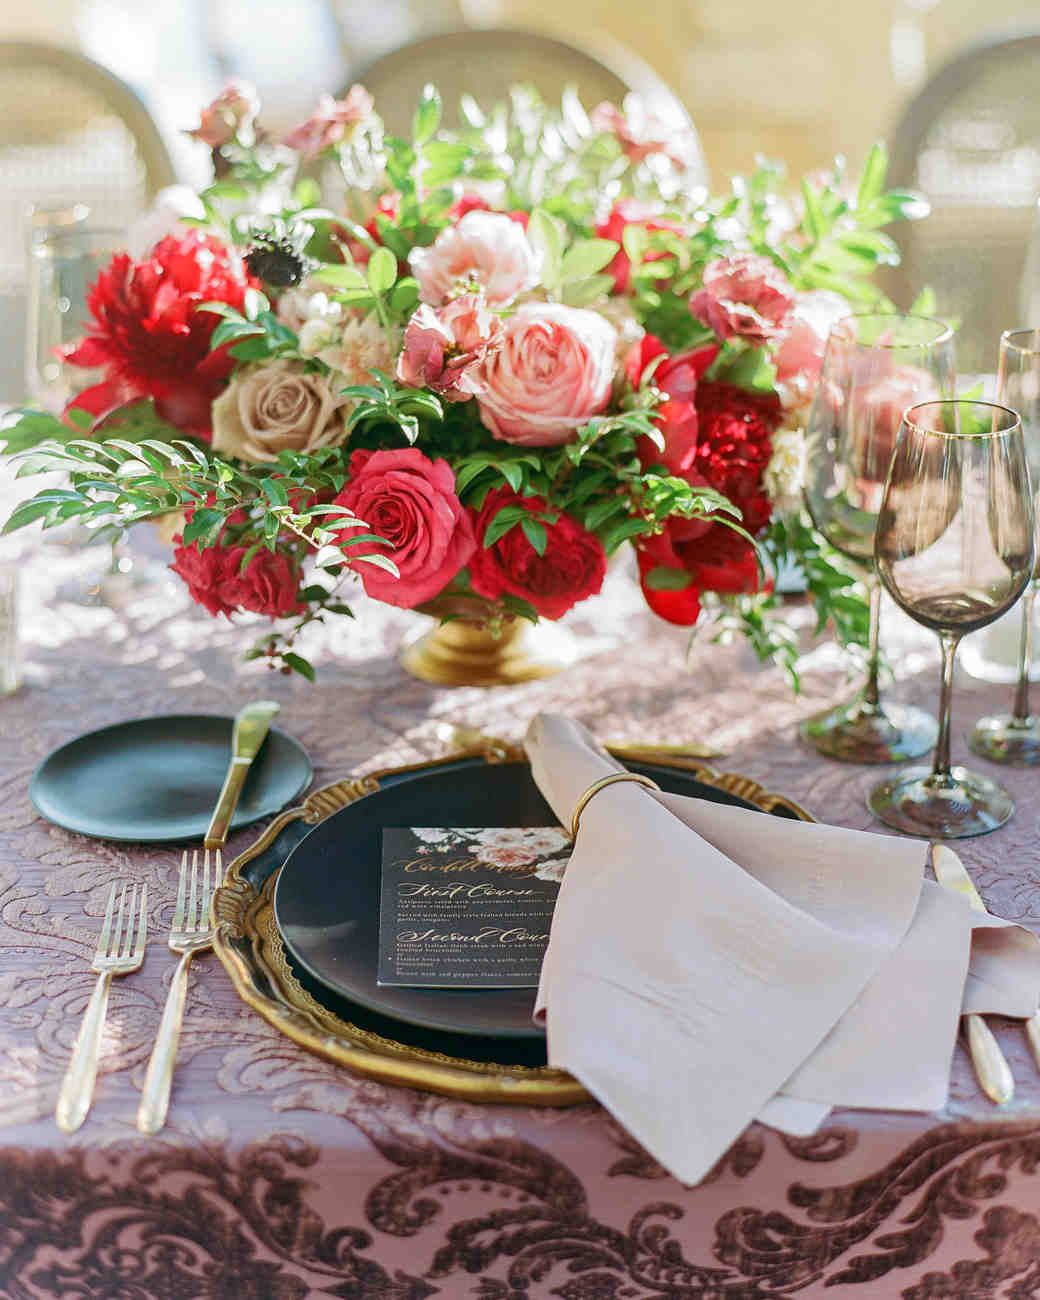 tillie dalton wedding reception table setting